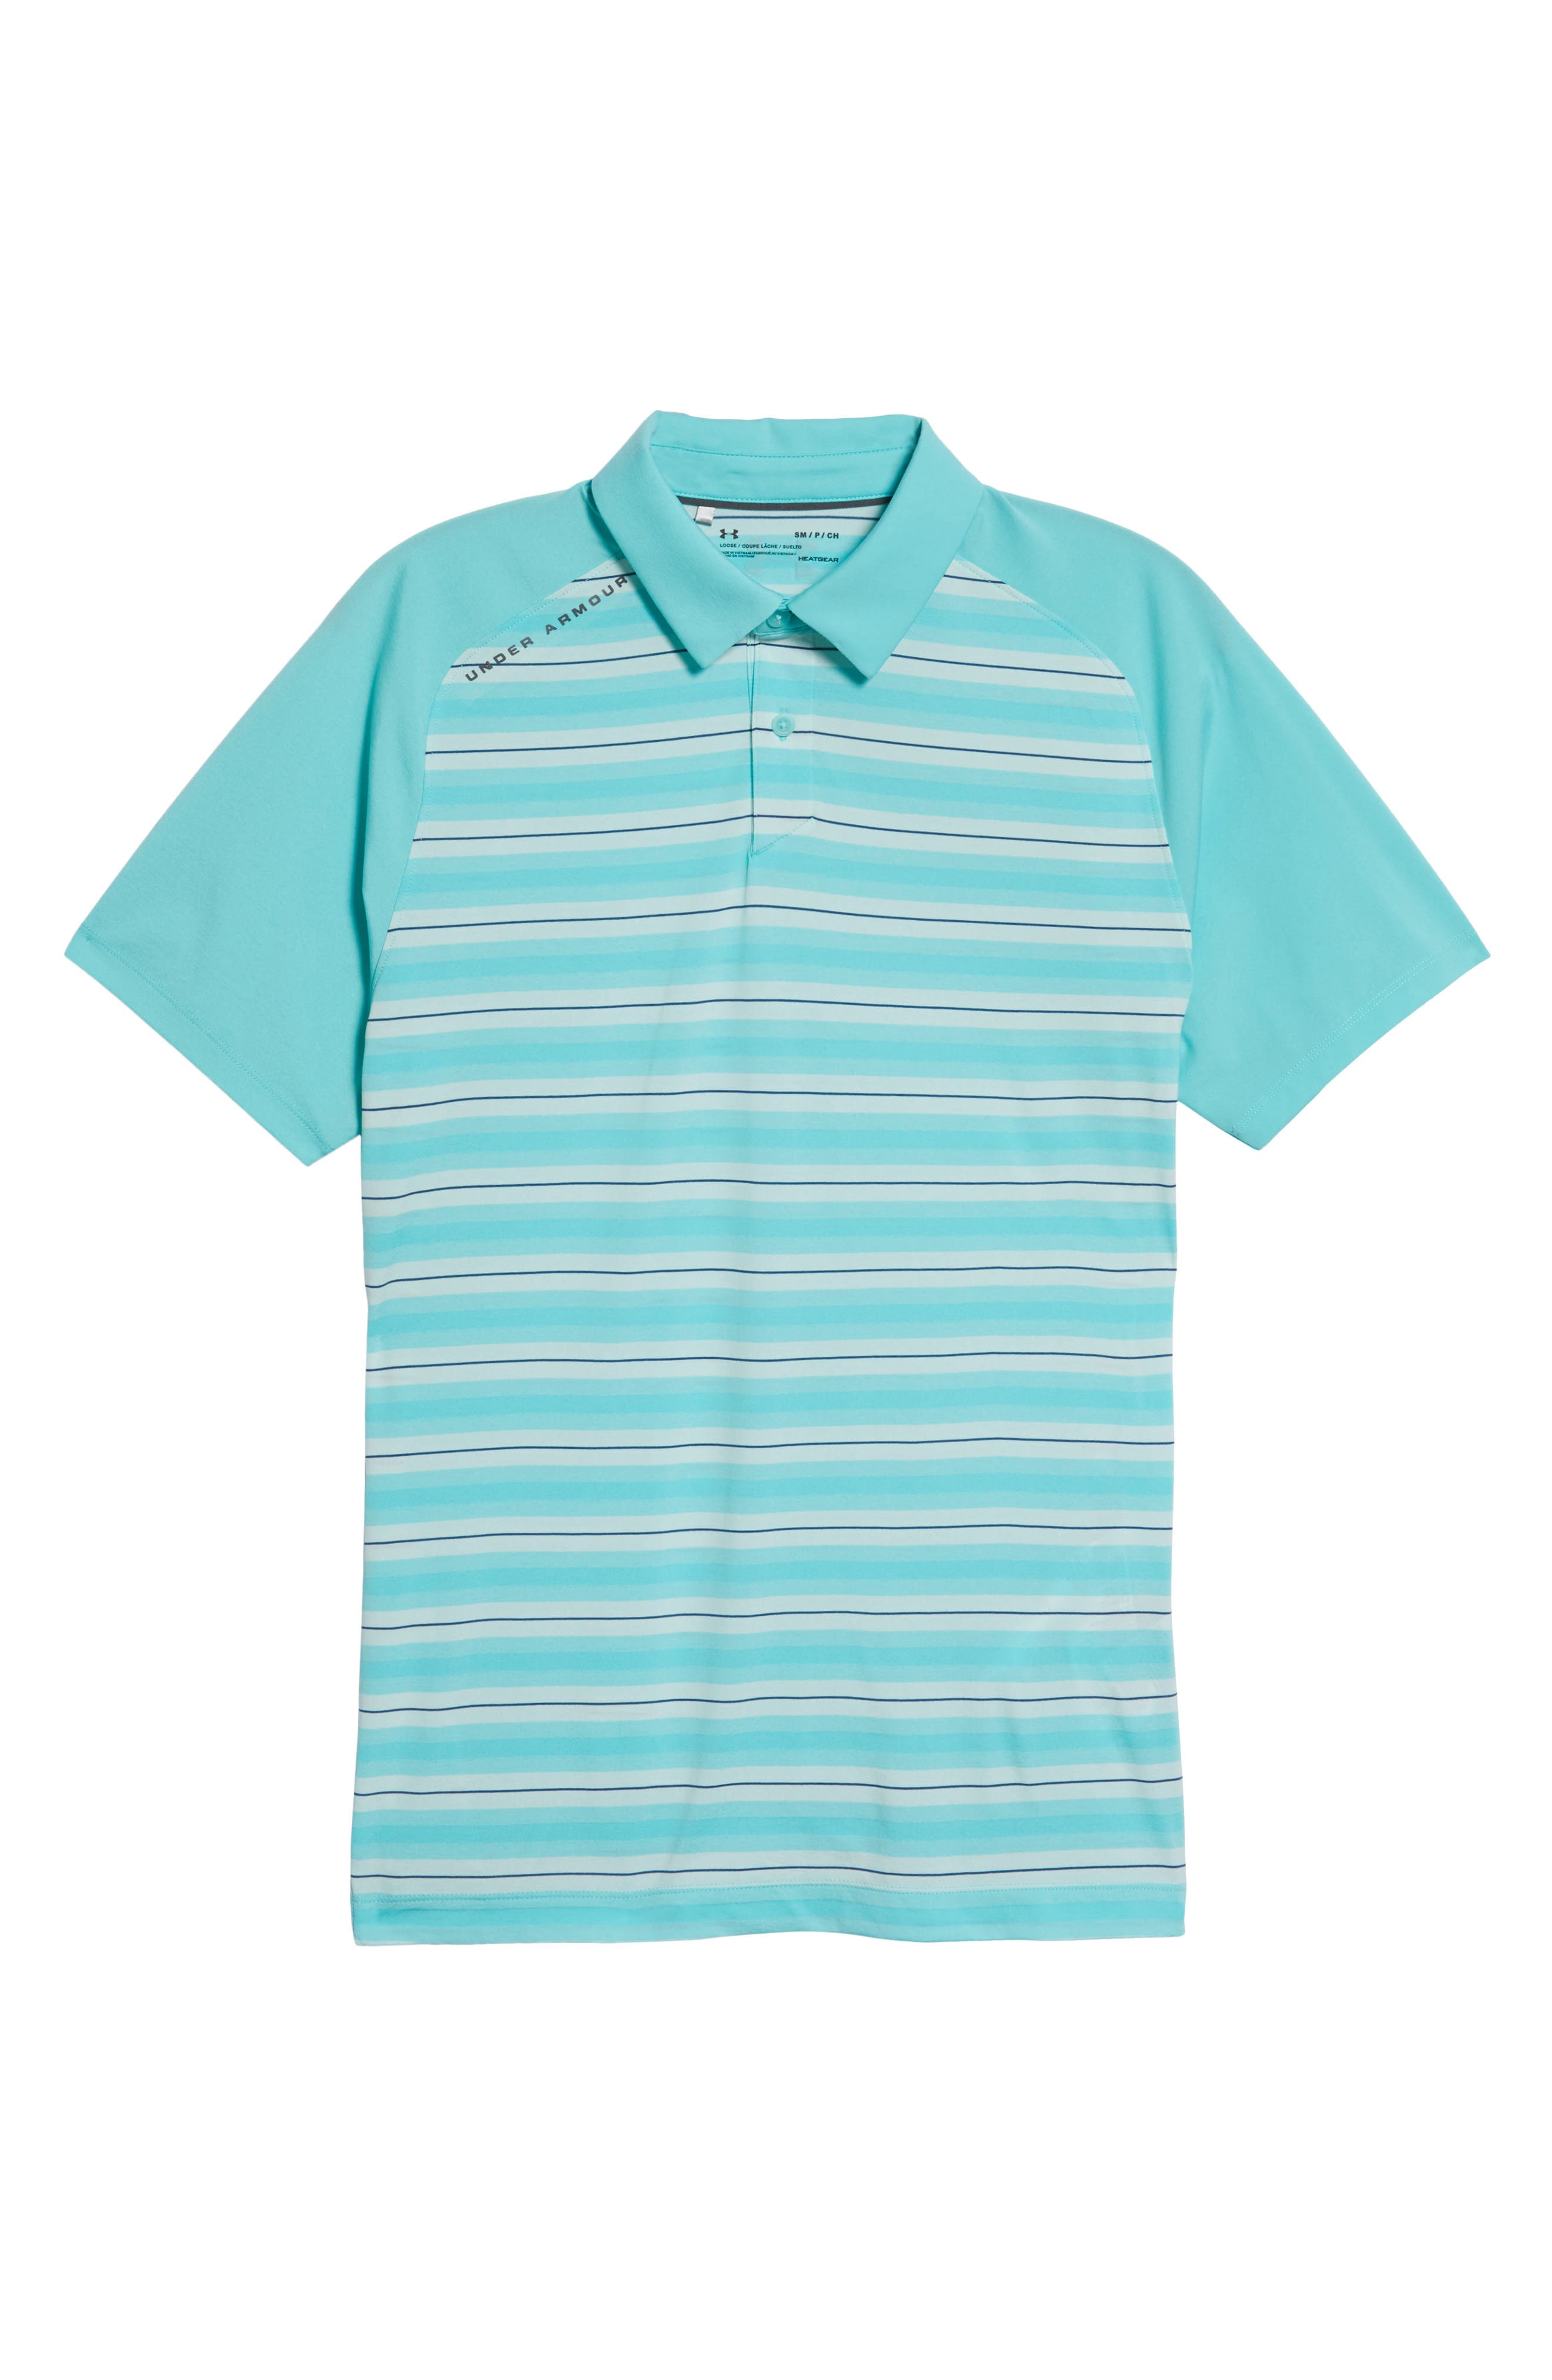 Threadborne Boundless Regular Fit Polo Shirt,                             Alternate thumbnail 6, color,                             TROPICAL TIDE/ RHINO GREY